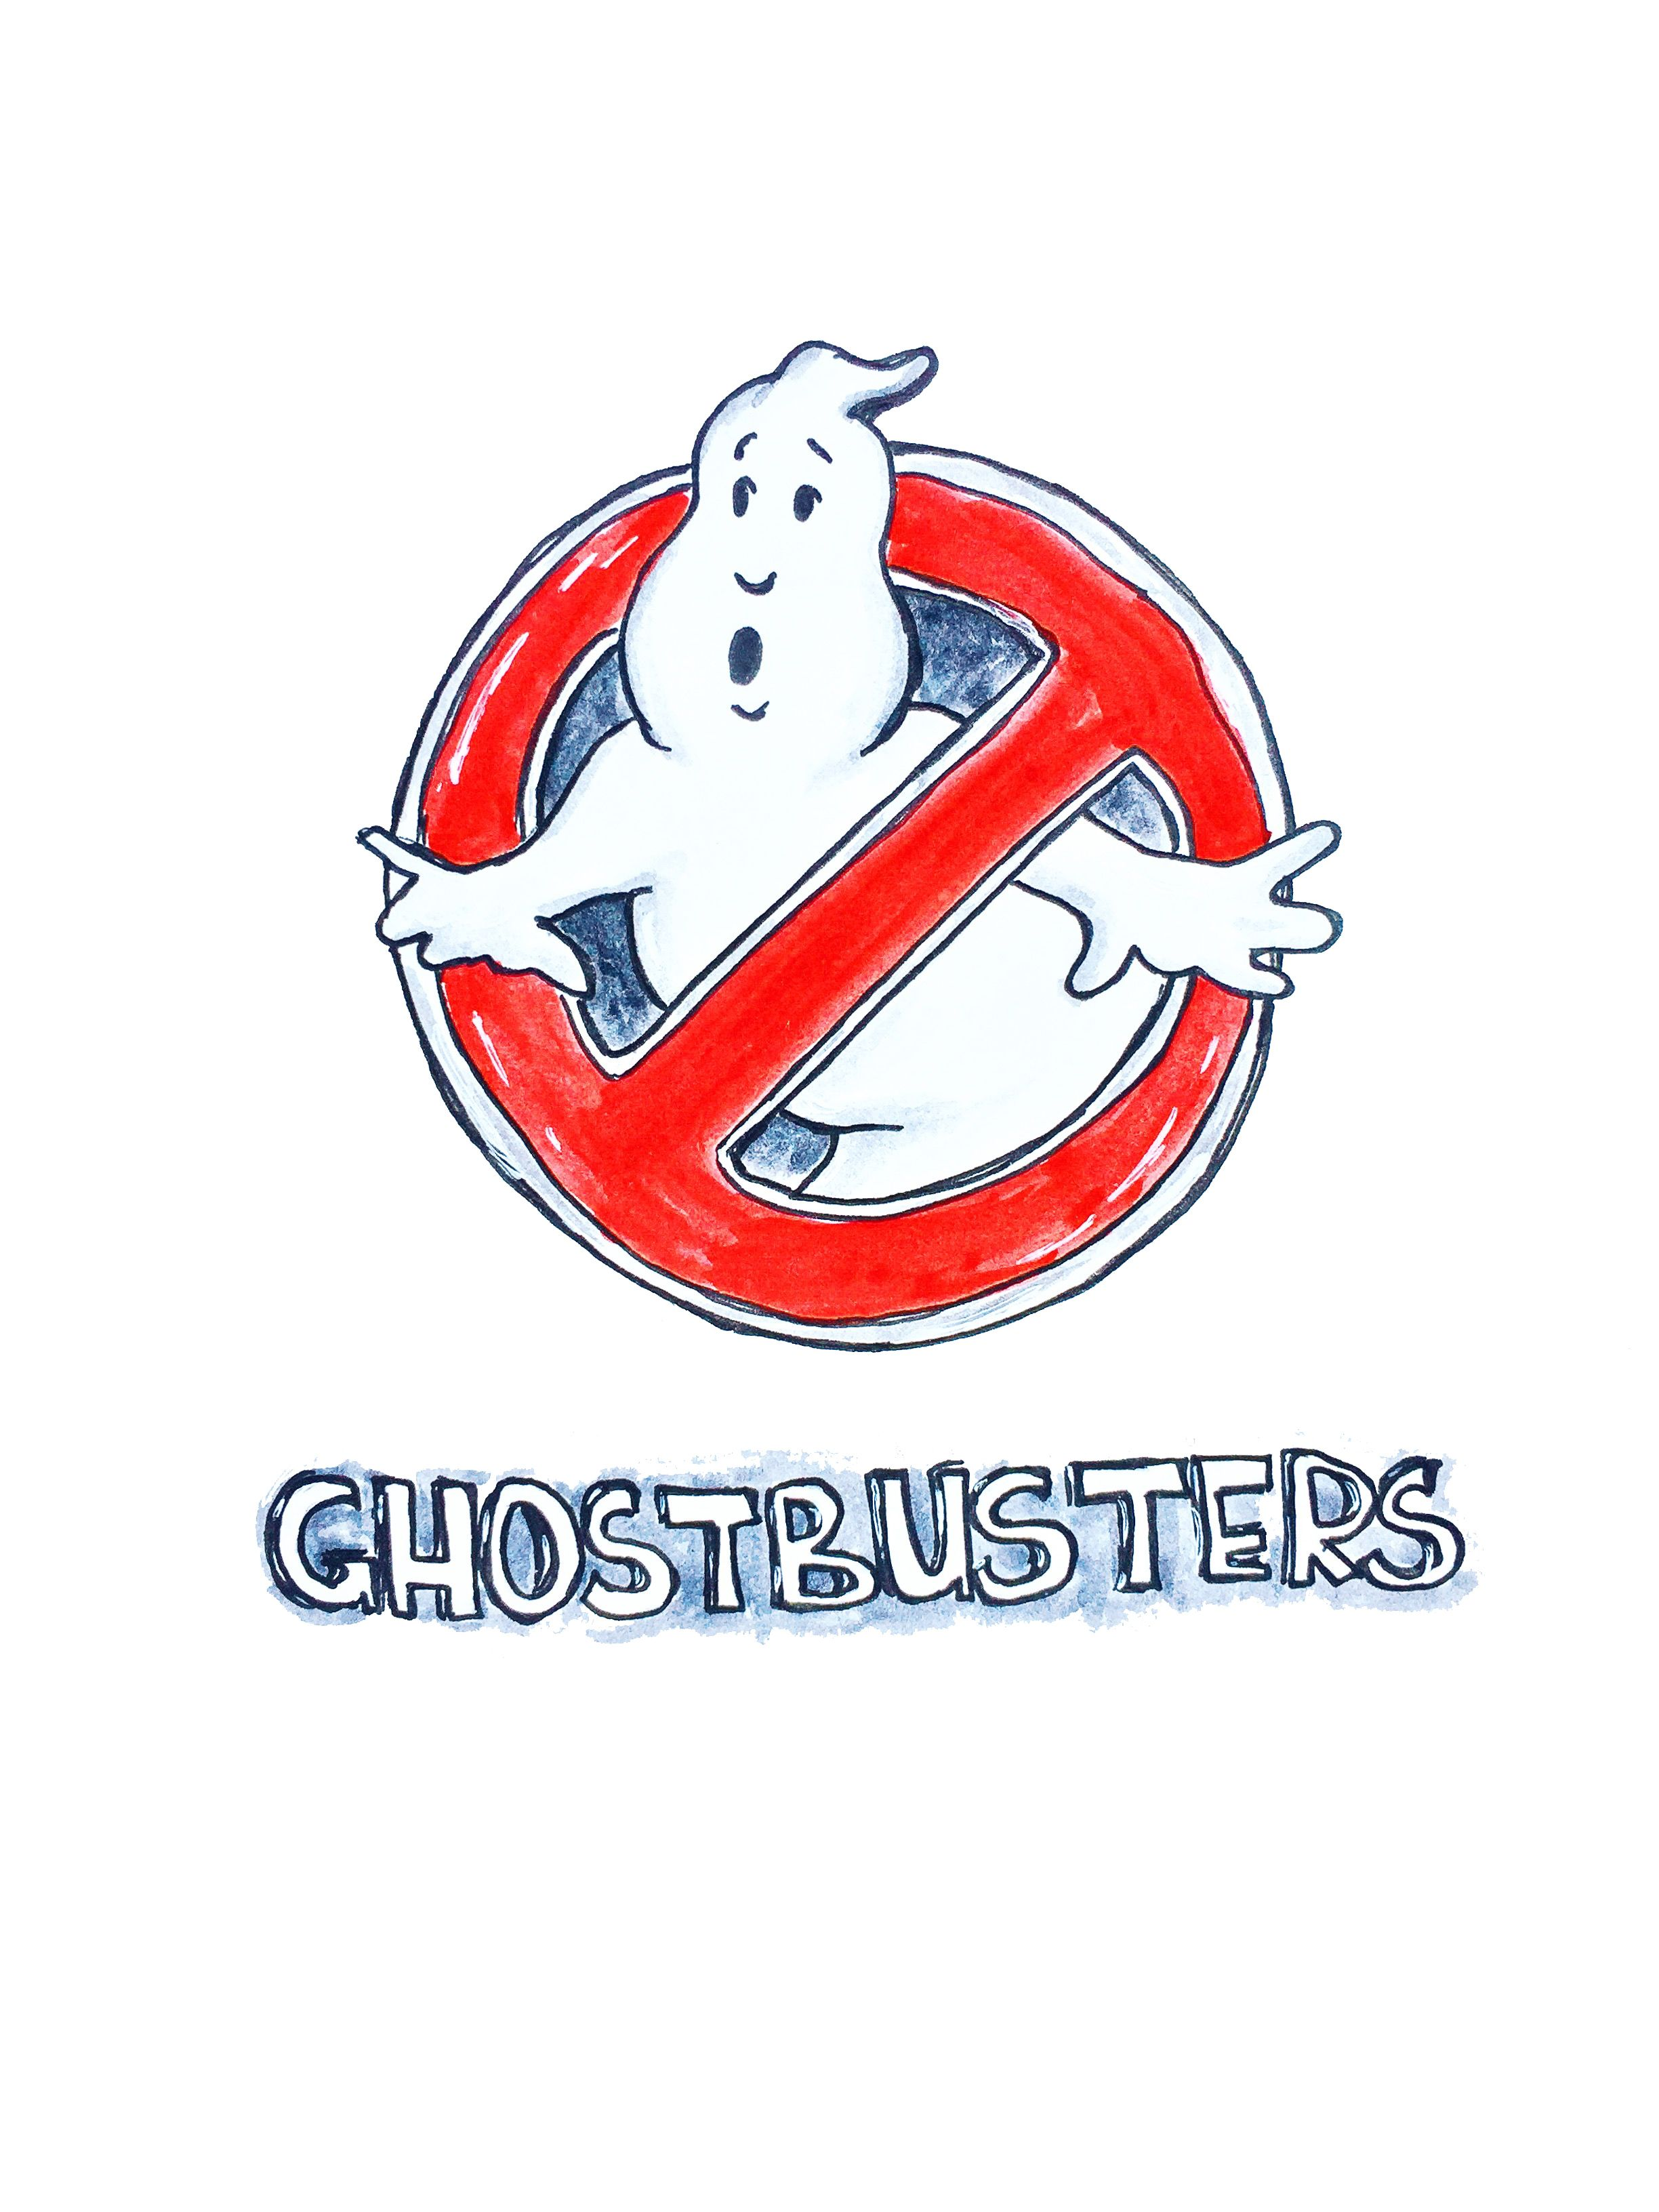 photograph regarding Ghostbusters Logo Printable named Ghostbusters printable For the House Ghostbusters